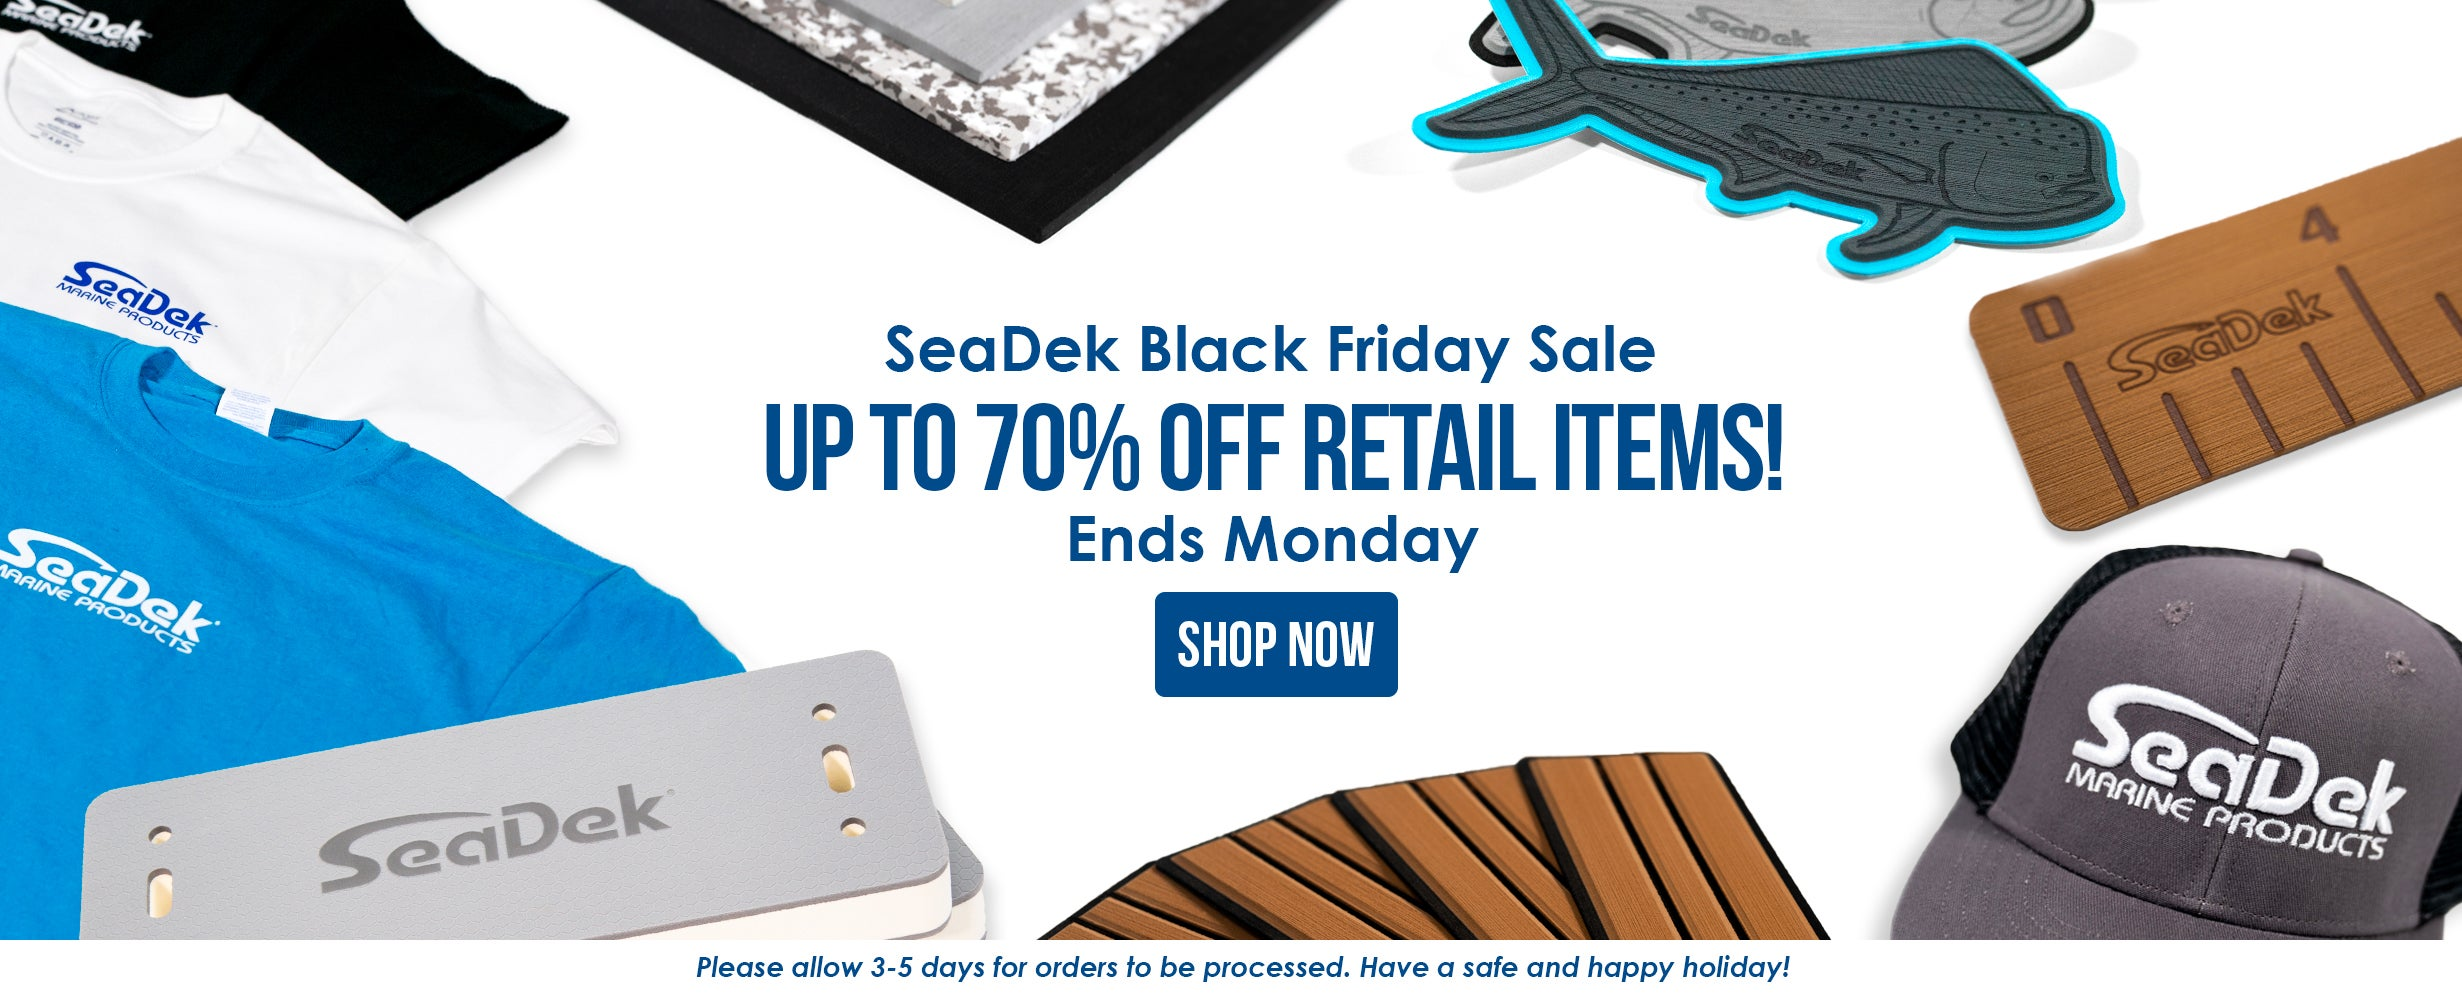 seadek cyber monday sale 2019